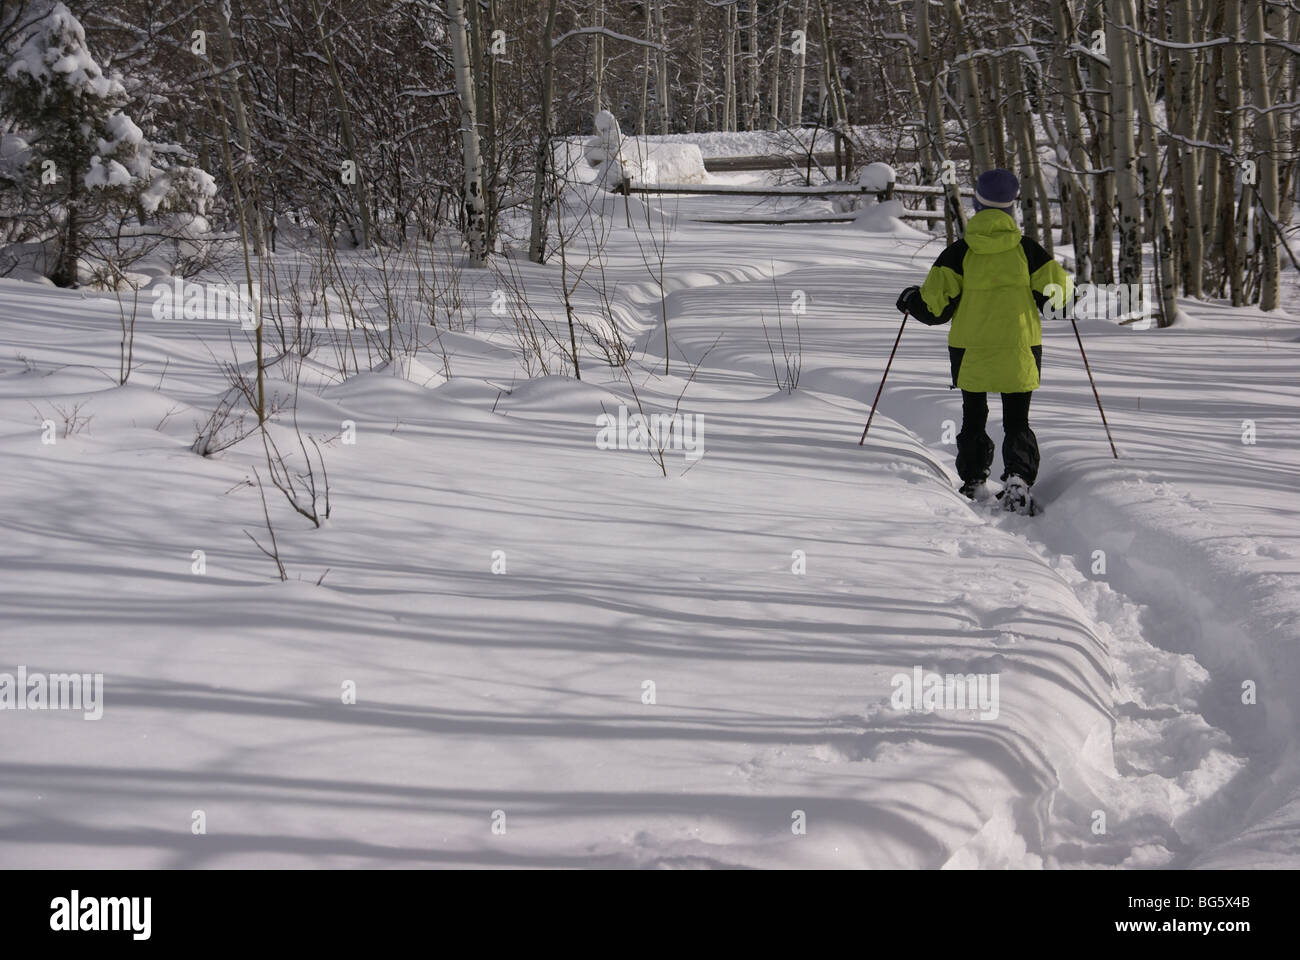 Yellow parka snow shoe hiker, on winter trail with bare aspens, Cordillera, Colorado, Rocky Mountains - Stock Image